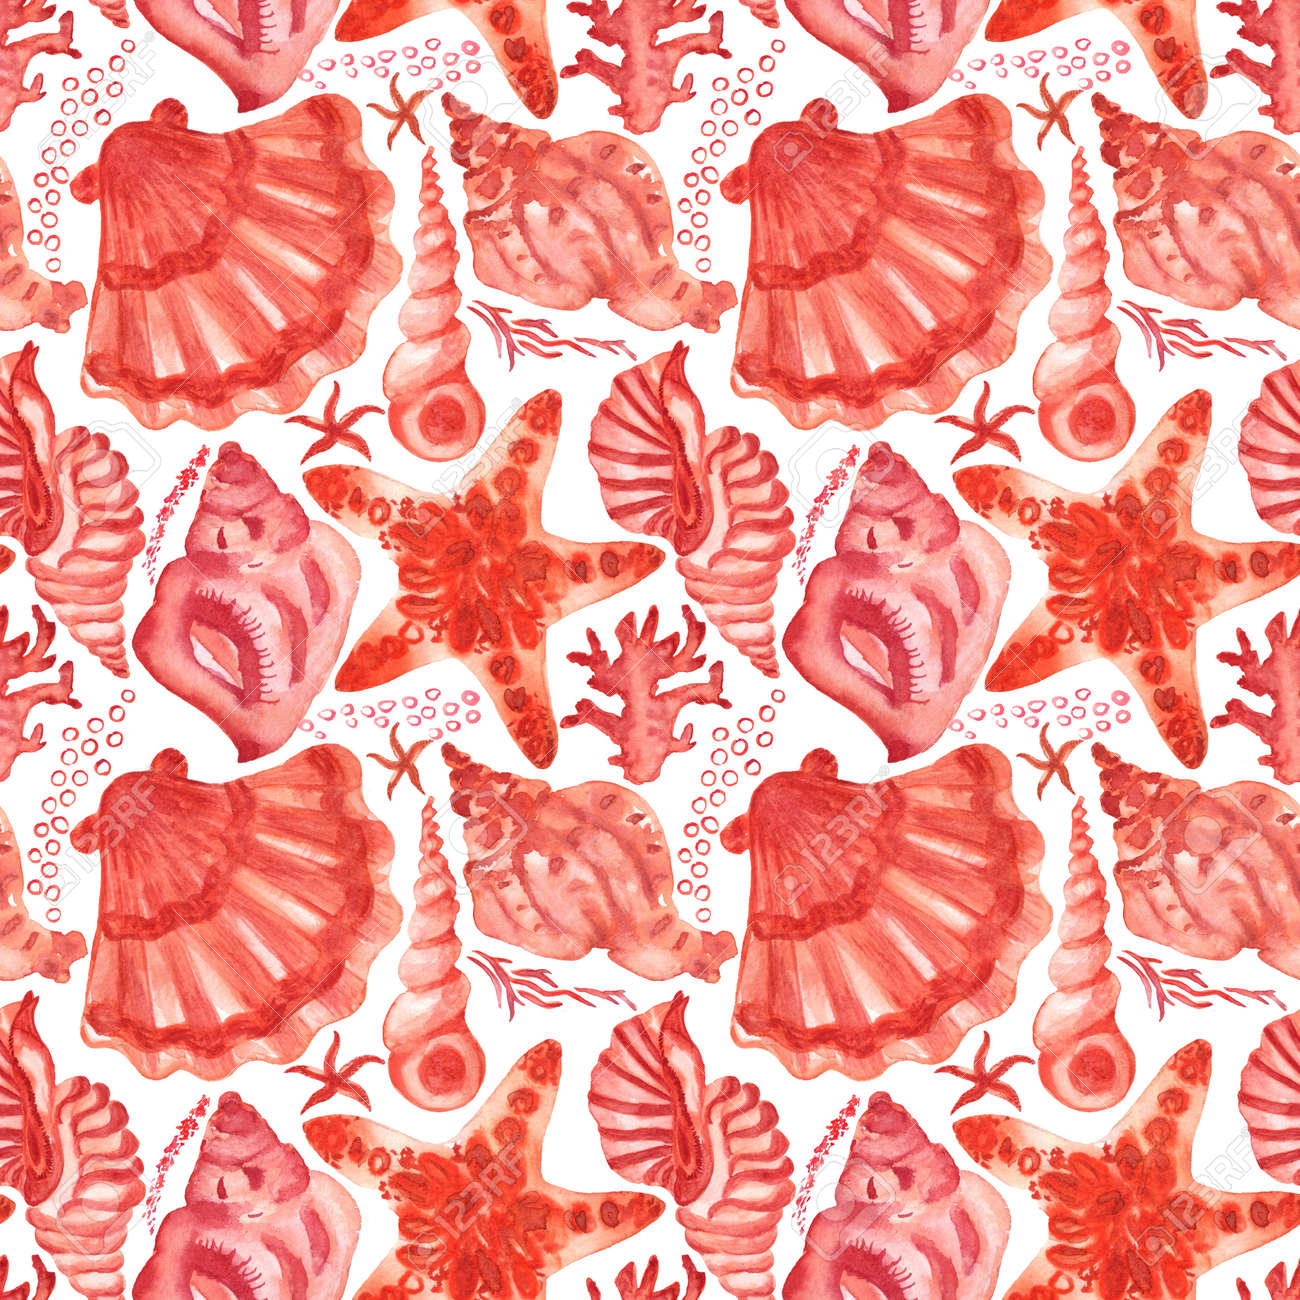 Watercolored seashells and starfishes seamless pattern. Colored illustration of underwater shells and sea stars for for creating fabrics, textile, decoupage, wallpapers, print, gift wrapping paper. - 167408763